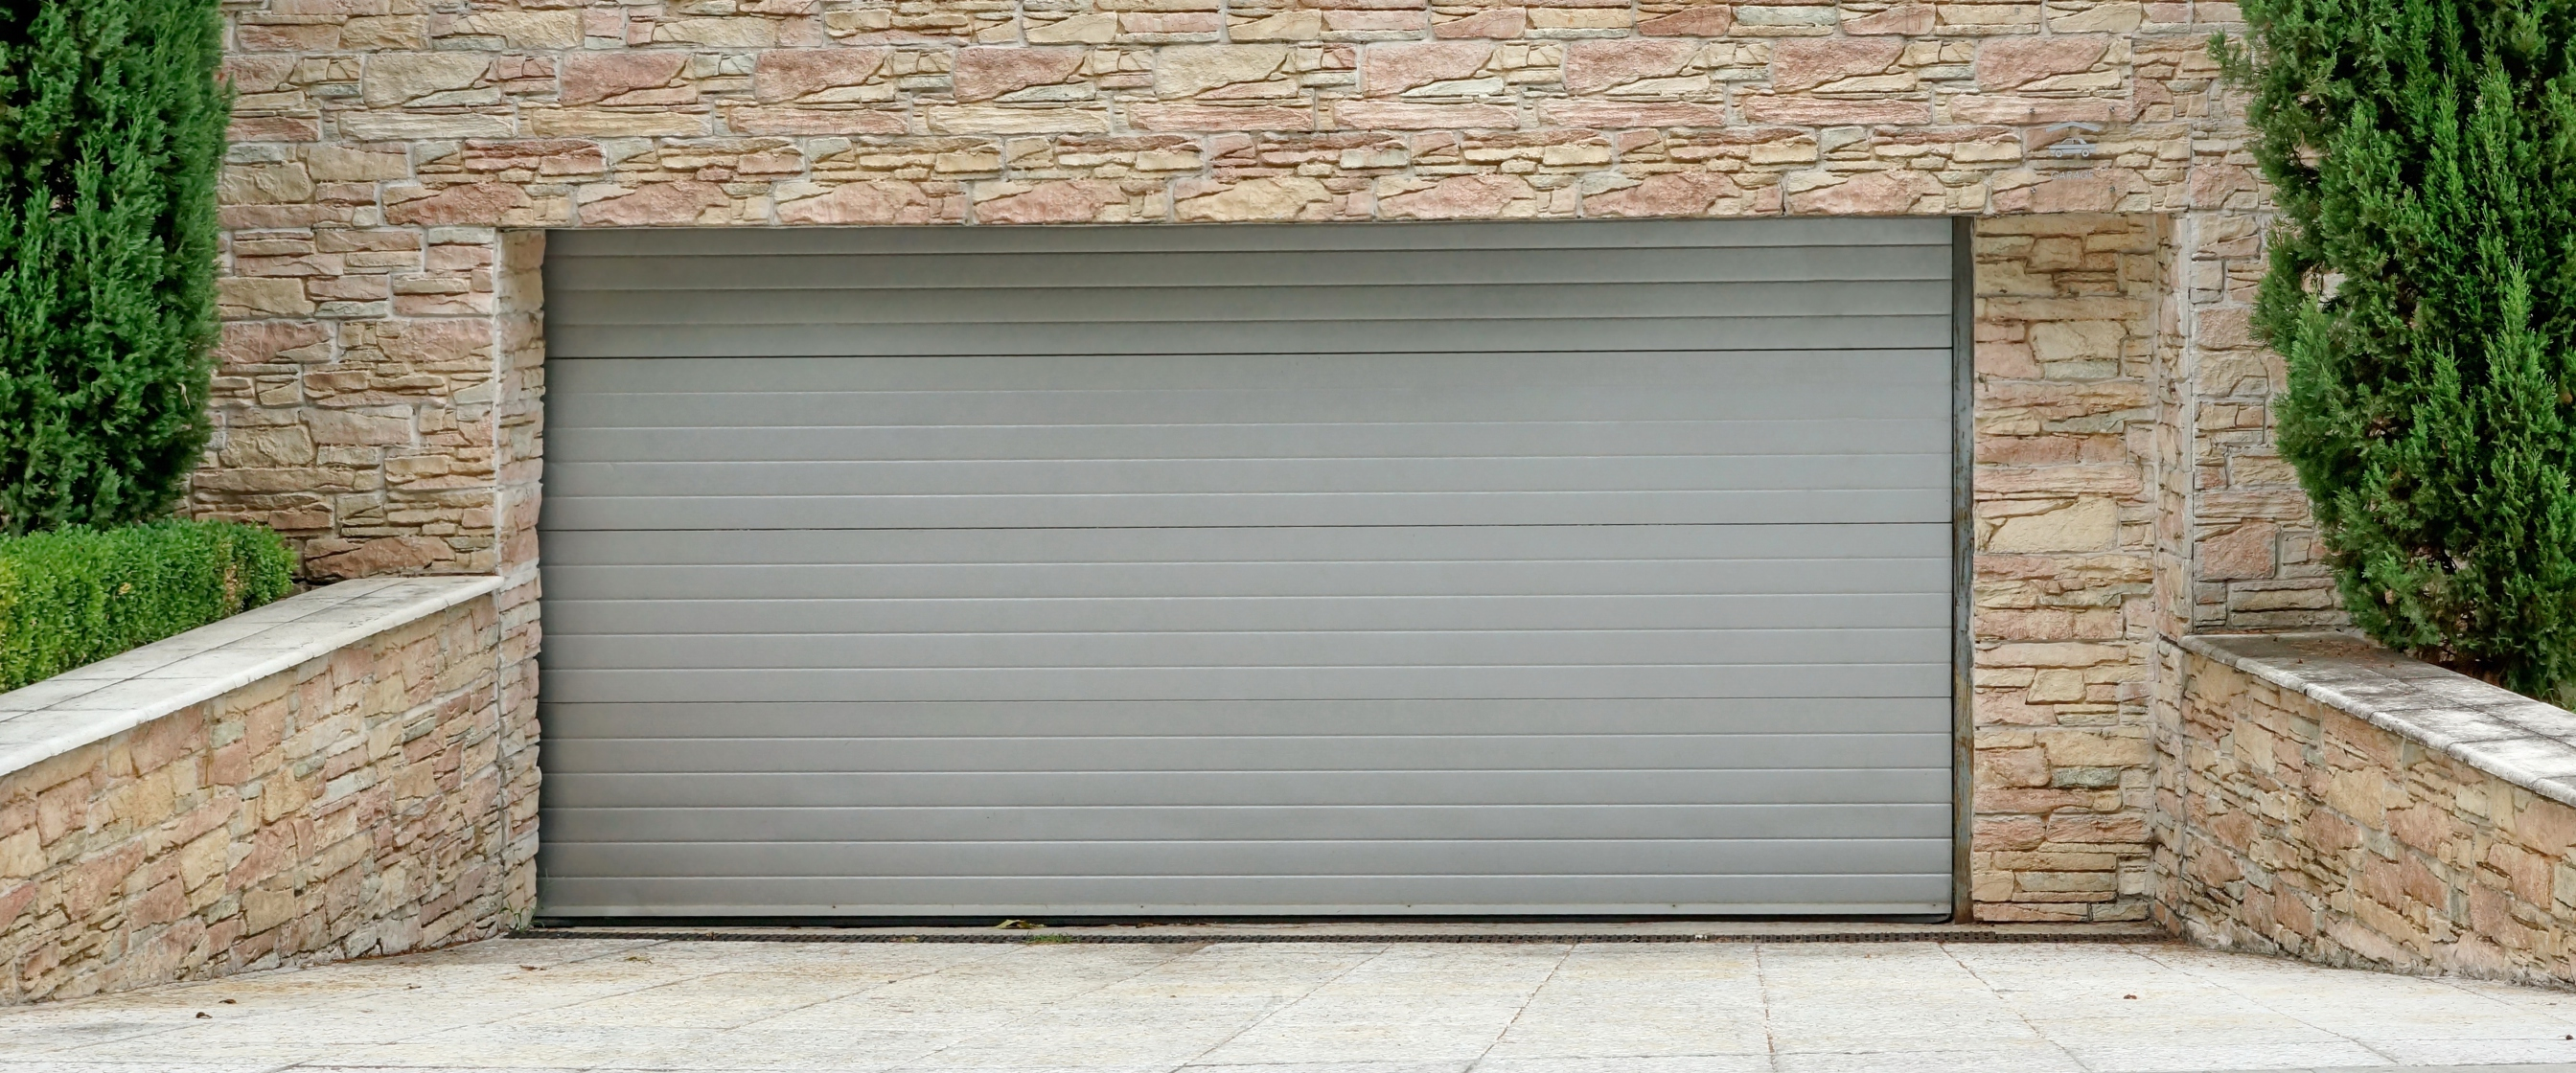 800 #3F6528 Roll Up Doors Available At Glen's Metal & Siding Riceville TN picture/photo Garage Doors Roll Up Residential 37191920